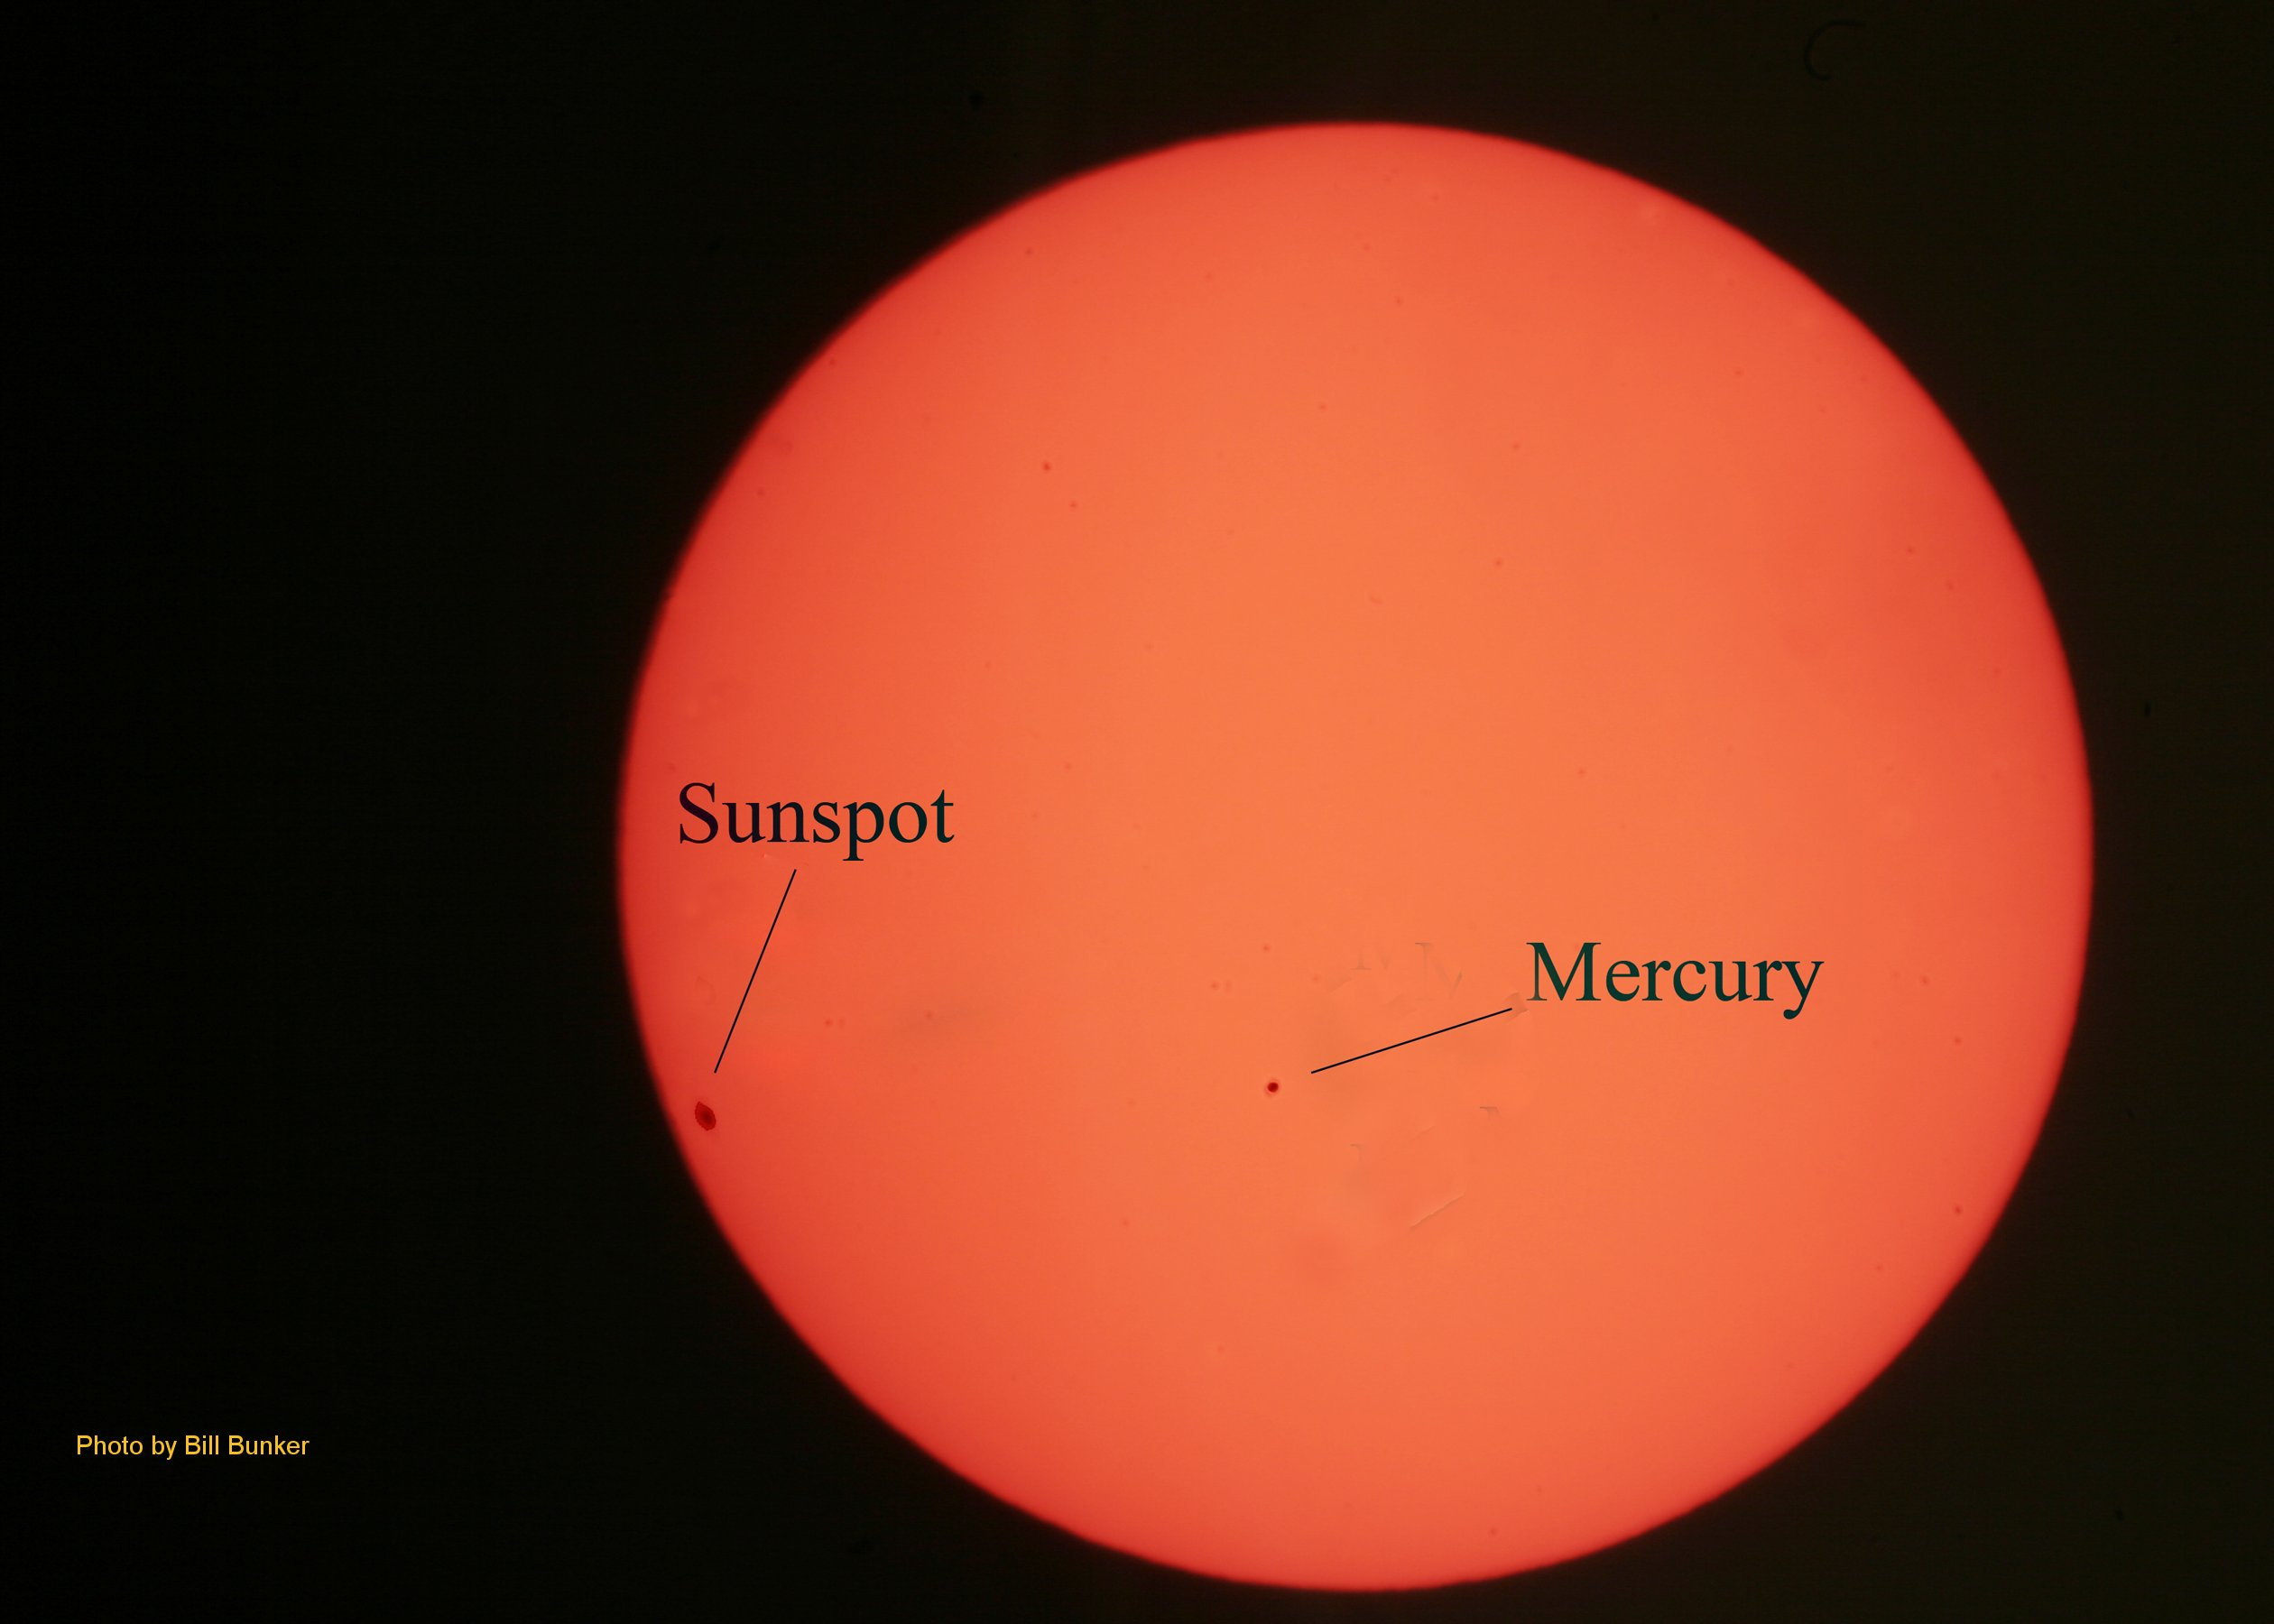 May 9, 2016 - Mercury Transit Black Dot